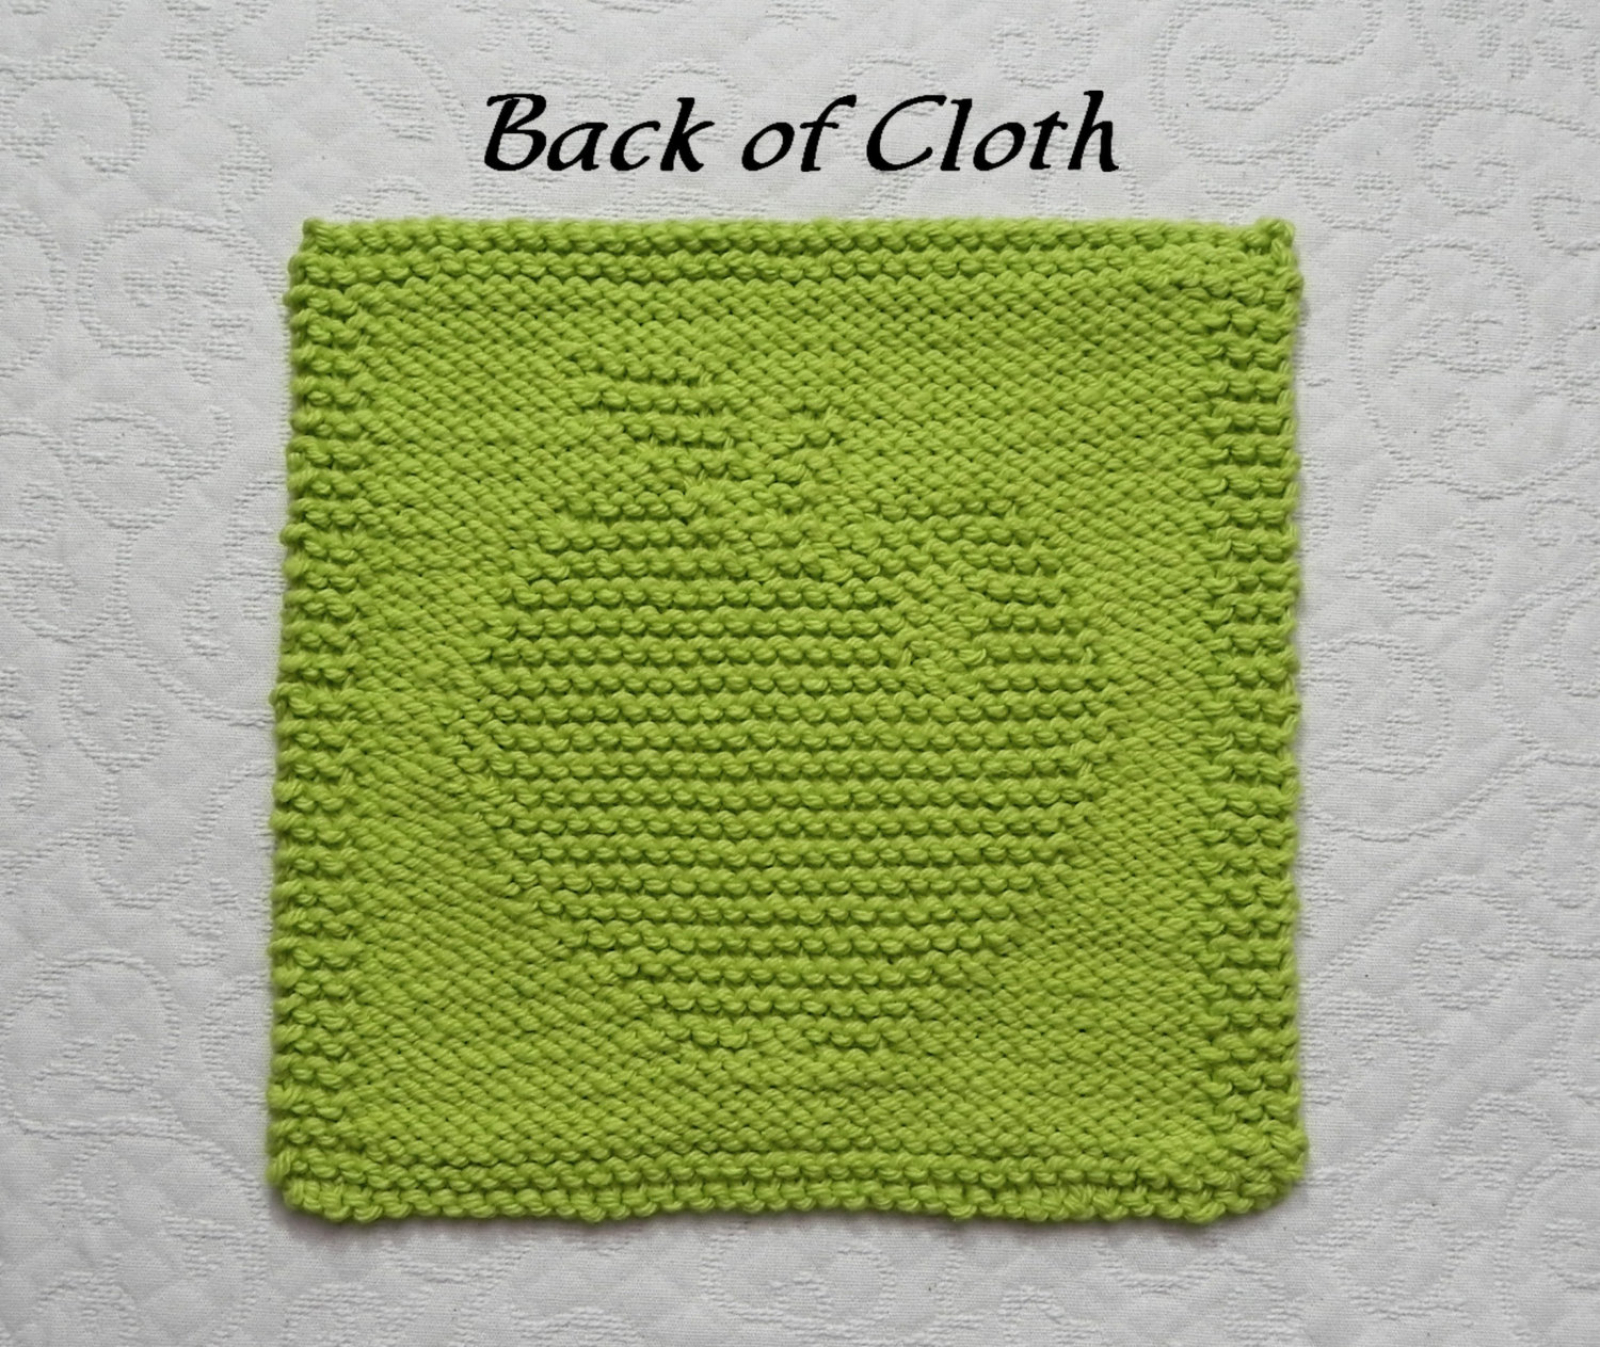 Knit Dishcloth Patterns For Beginners Apple Knitted Dishcloth Pattern